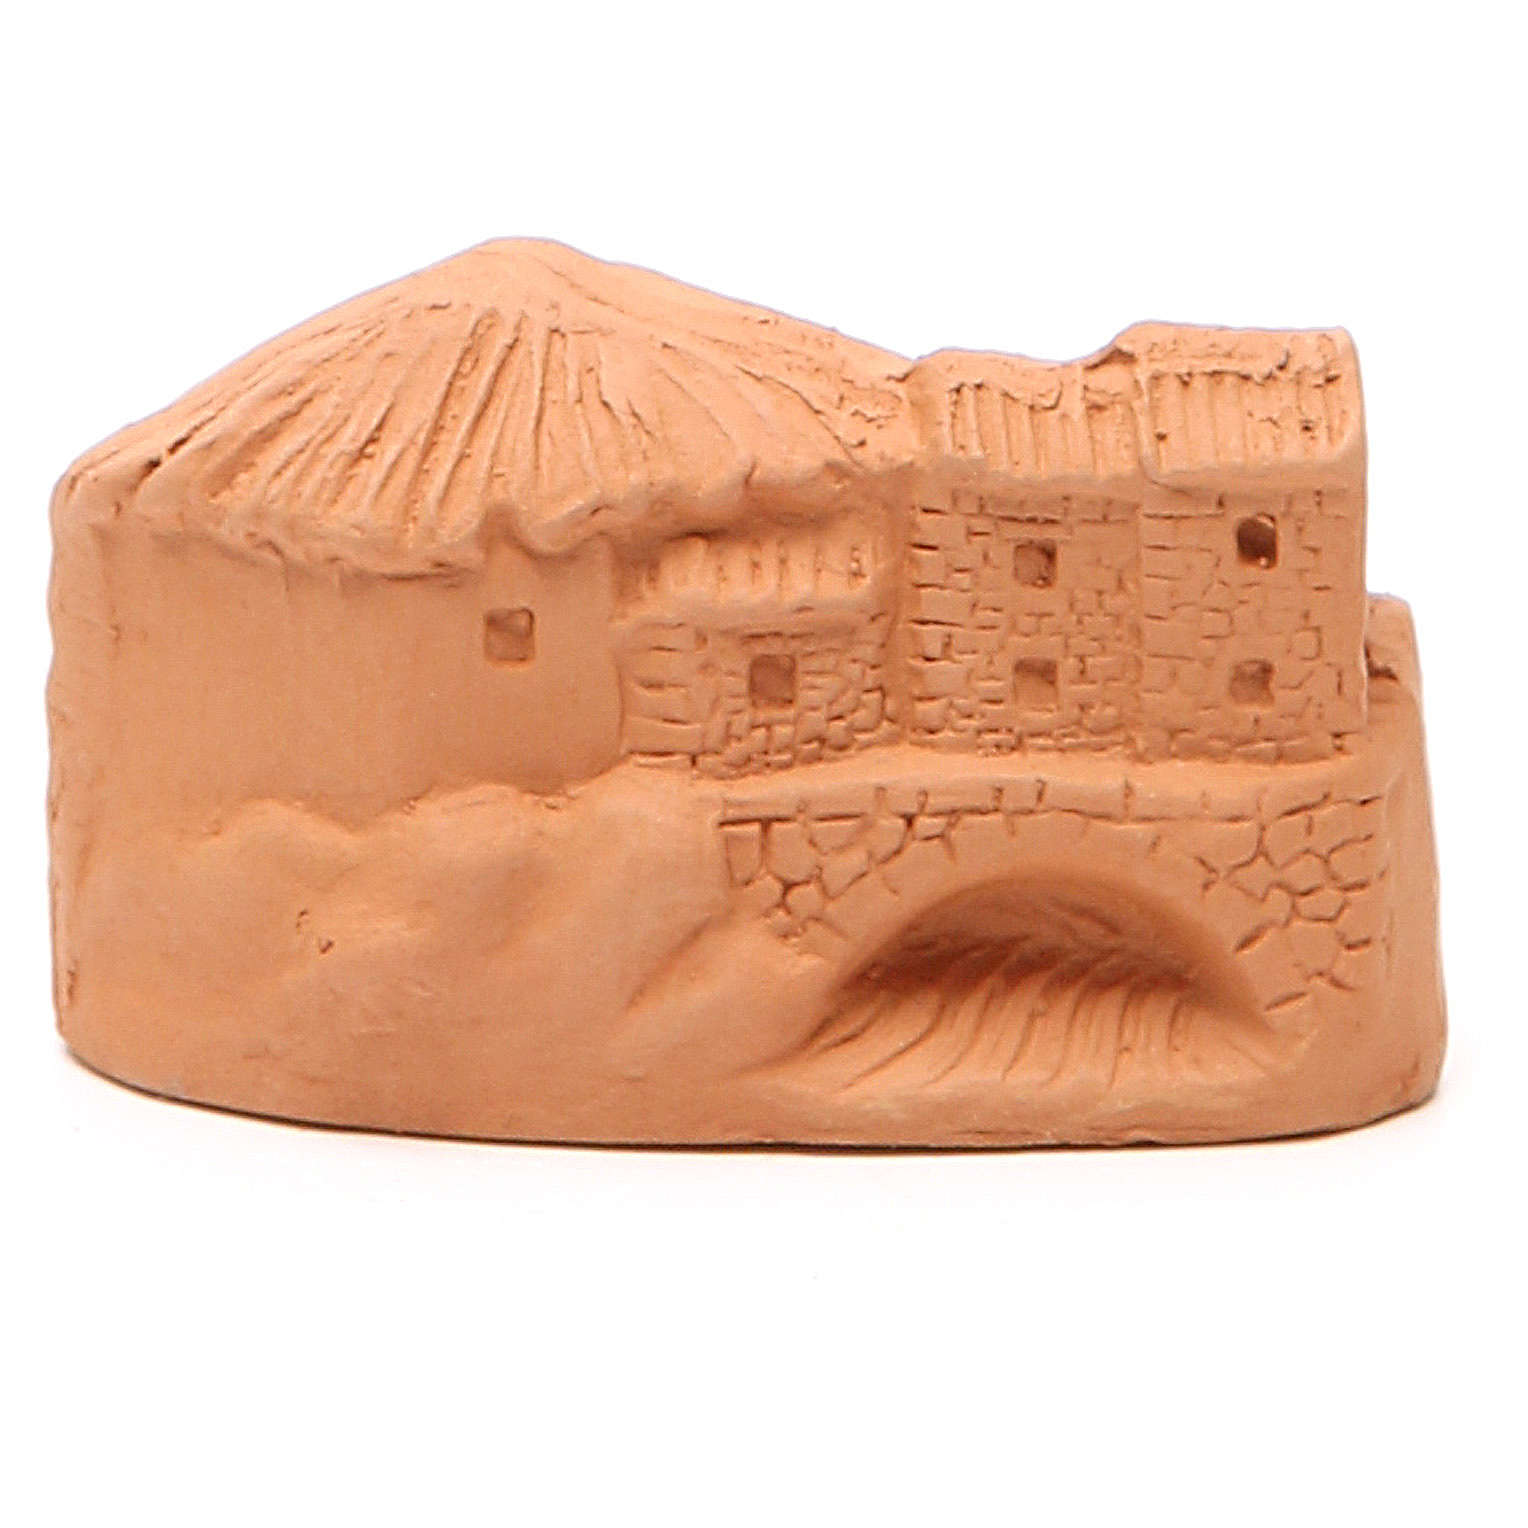 Natività in miniatura terracotta naturale 5x4x7 cm 4